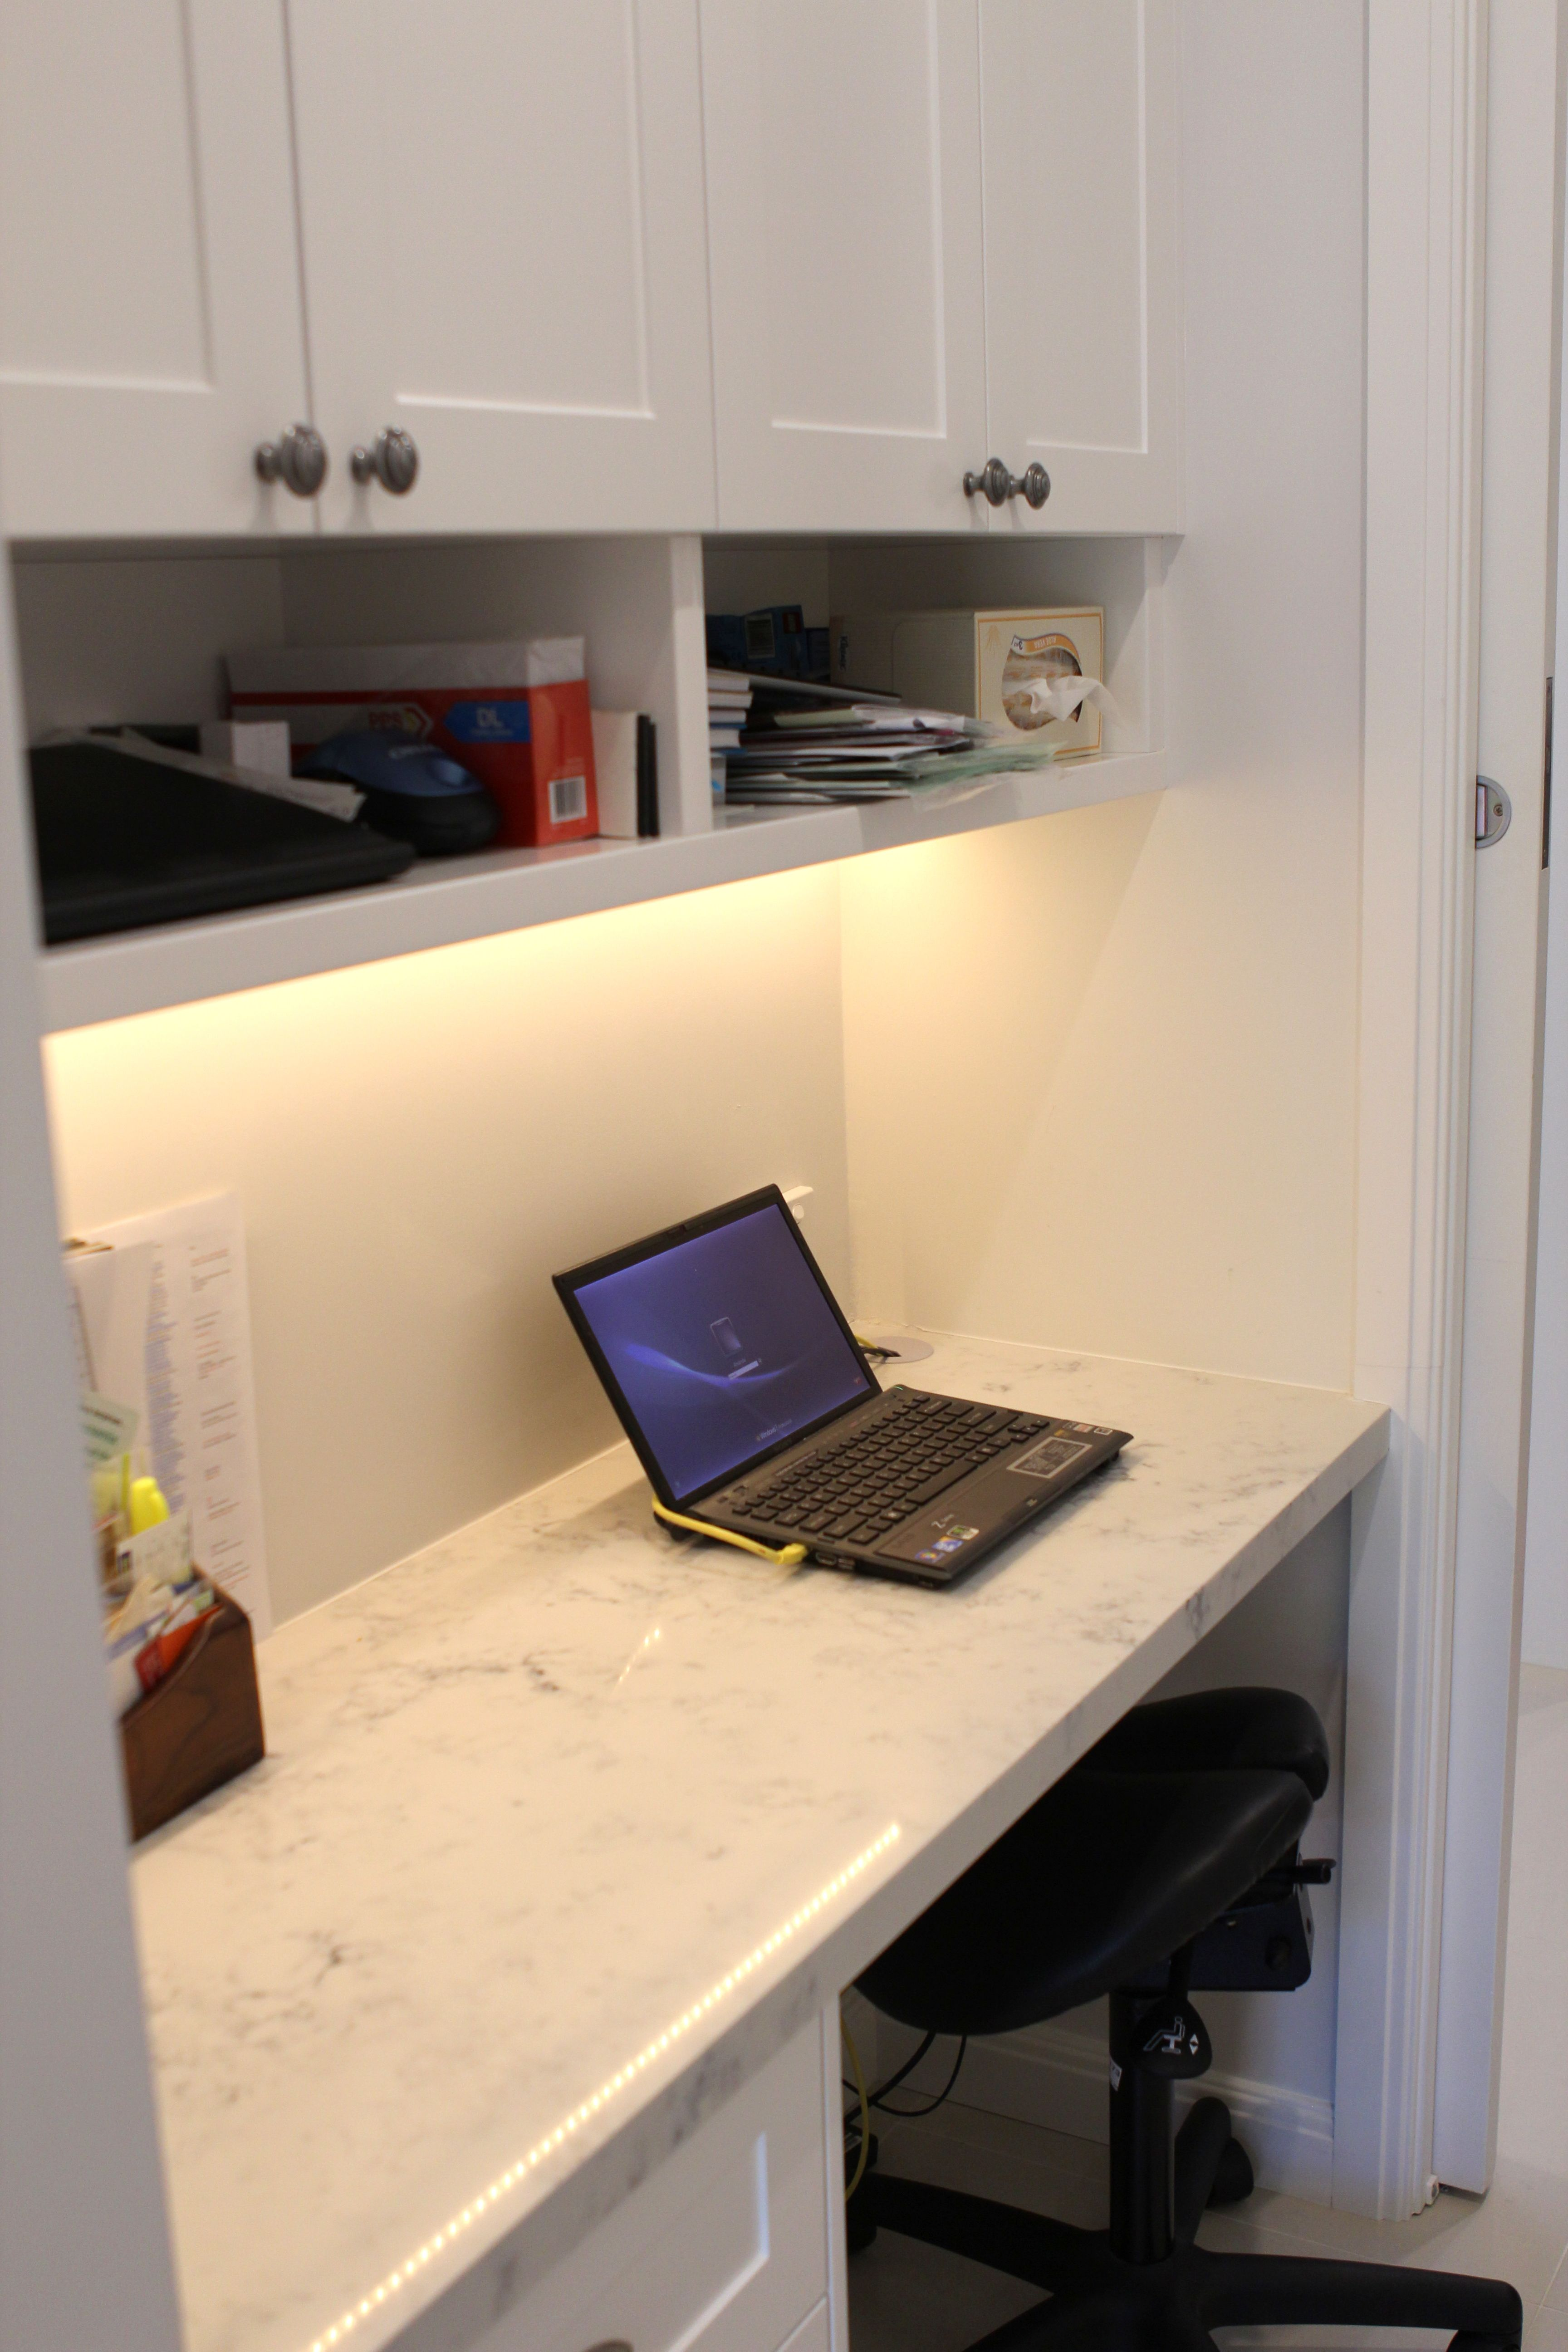 Mum S Study Nook Built In To Integrate With Laundry Area Off Butlers Pantry Close Enough To The Action To Put Your Head Around The C Study Nook Kitchen Ideas New House